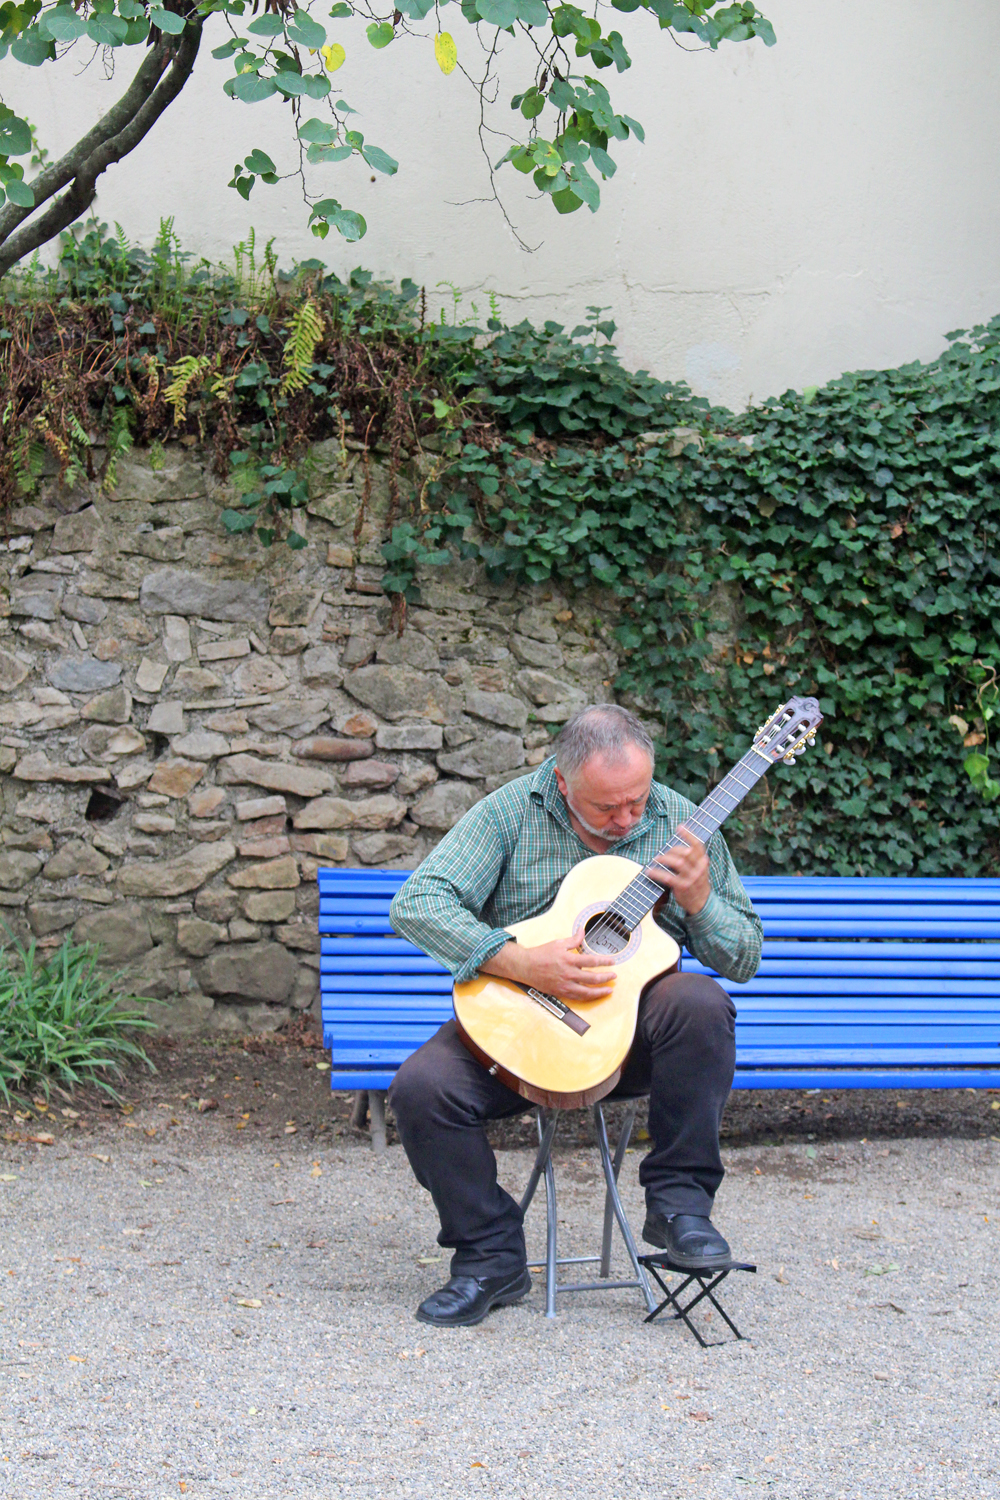 Guitarist in Girona, Spain - travel & lifestyle blog